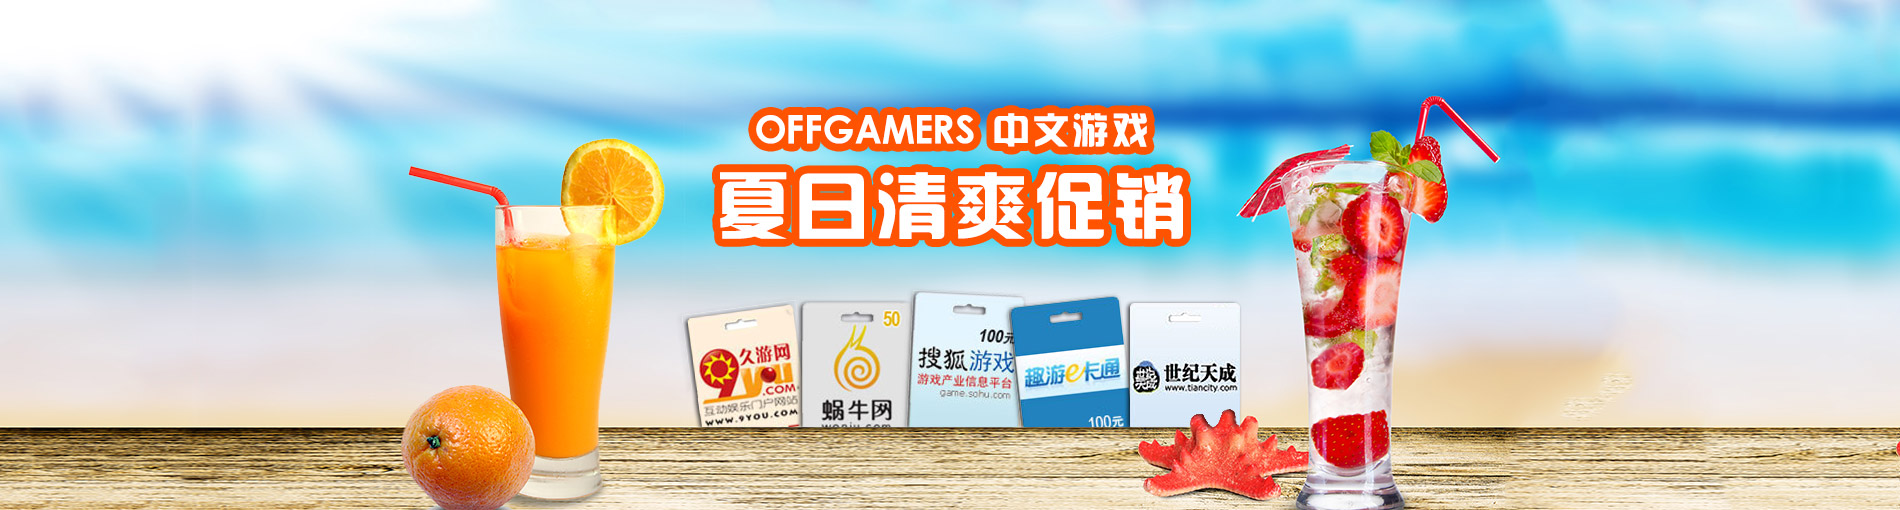 Offgamers discount coupon